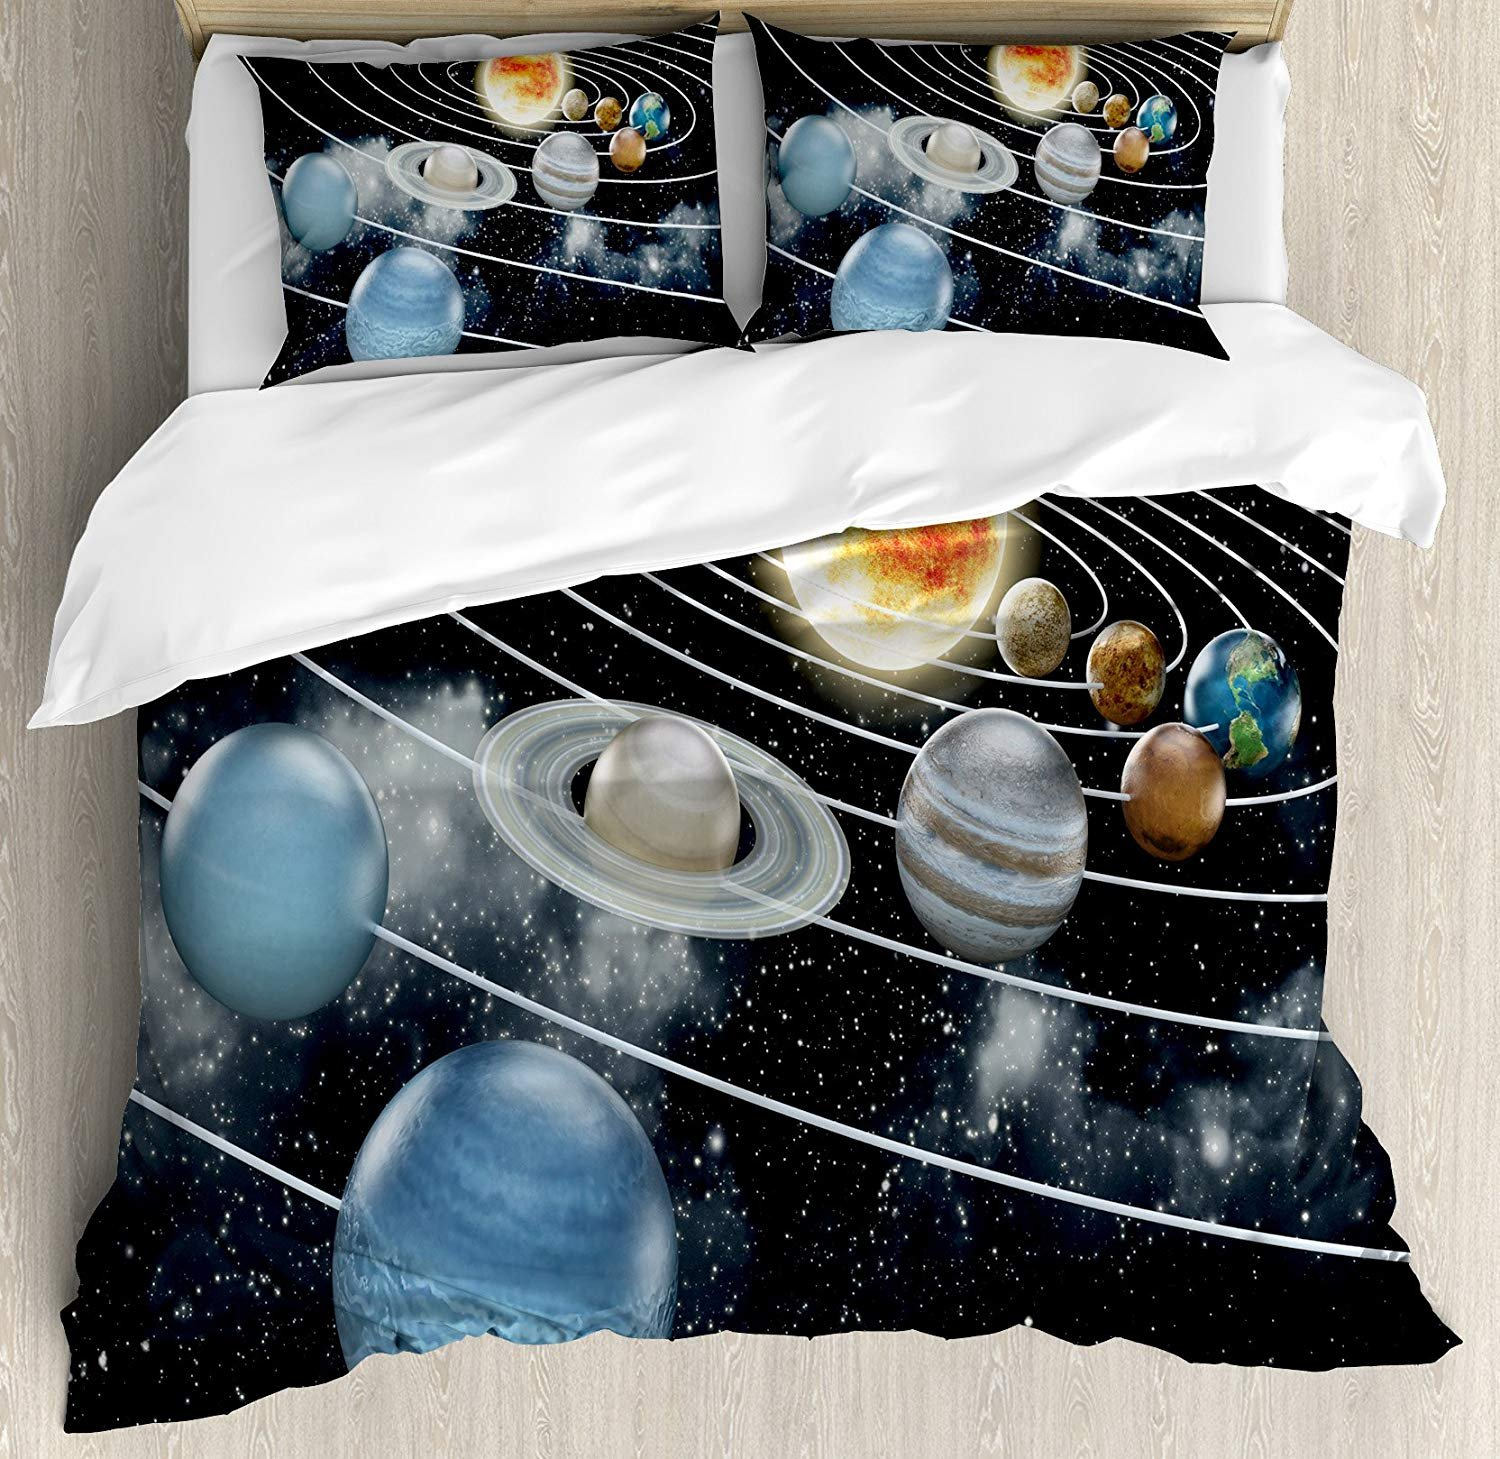 Galaxy Twin Duvet Cover Sets 4 Piece Bedding Set Bedspread with 2 Pillow Sham, Flat Sheet for Adult/Kids/Teens, Solar System All Eight Planets and the Sun Pluto Jupiter Mars Venus Science Fiction